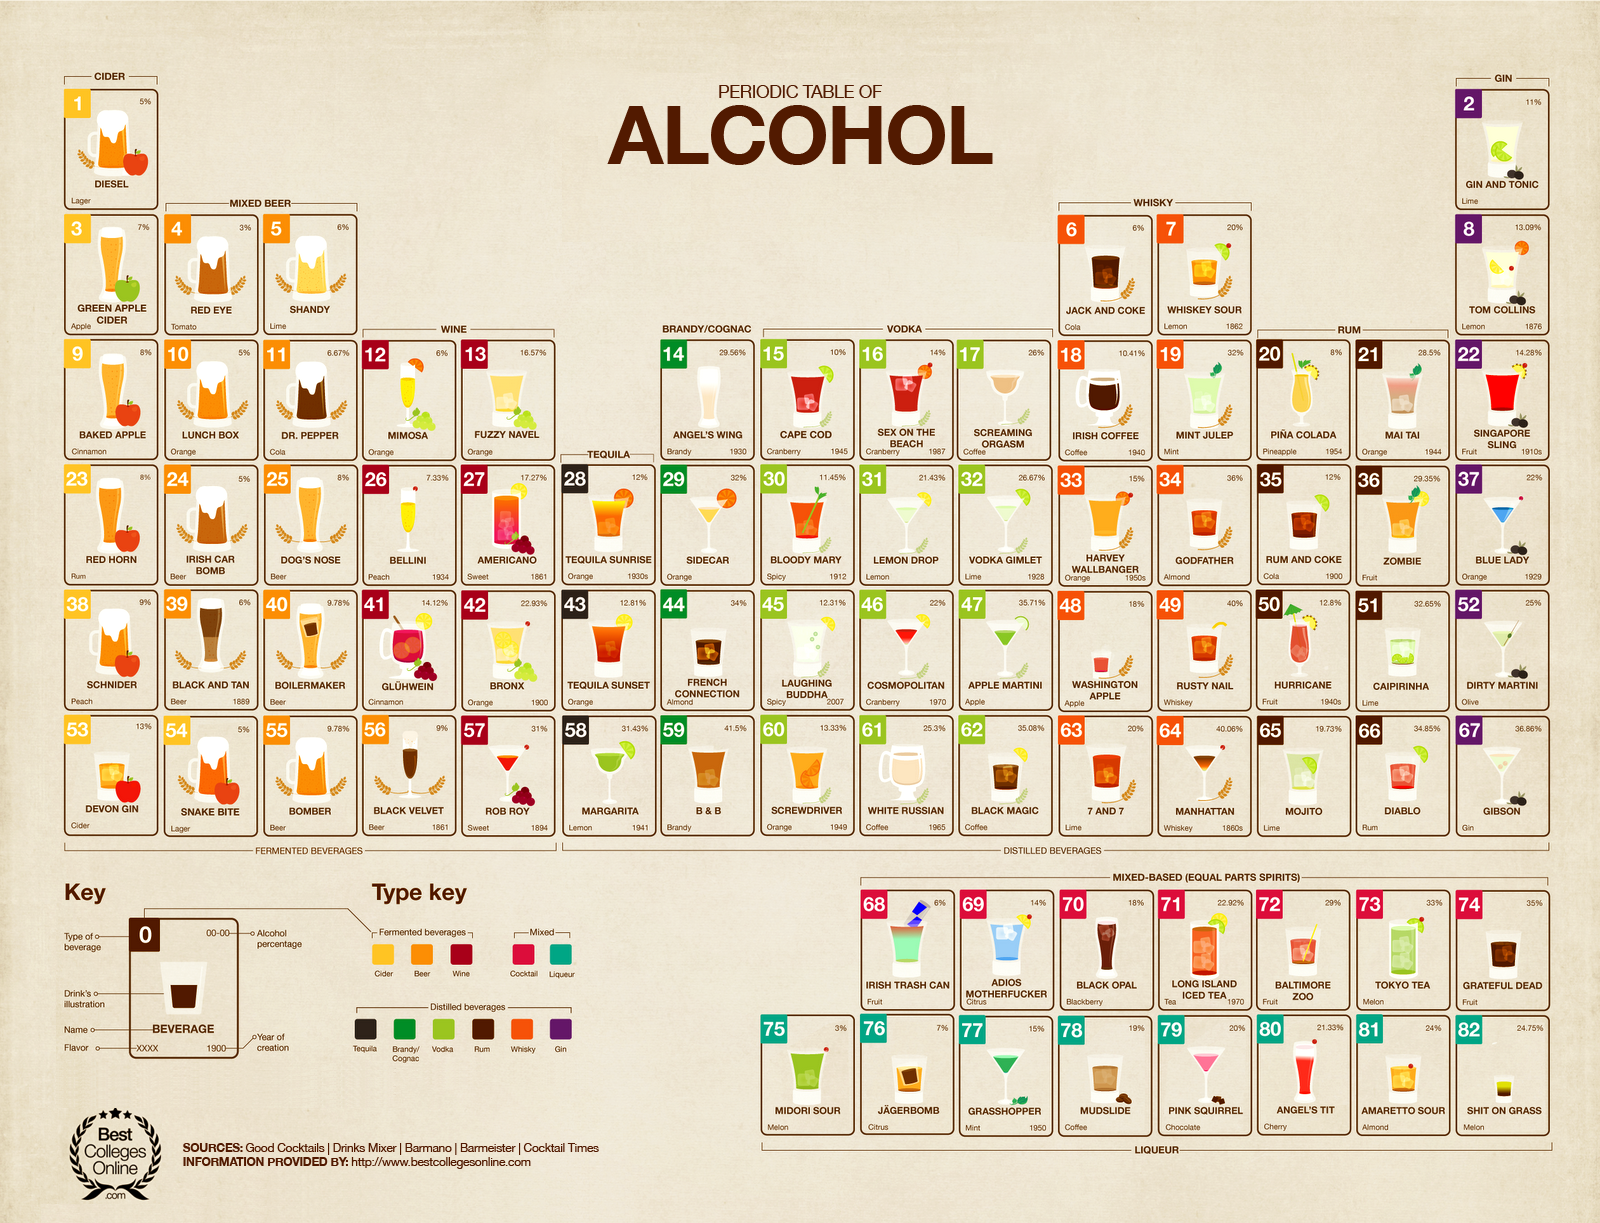 Alcohol tolerance chart by weight gallery free any chart examples alcohol tolerance chart by weight choice image free any chart alcohol tolerance chart by weight gallery nvjuhfo Choice Image